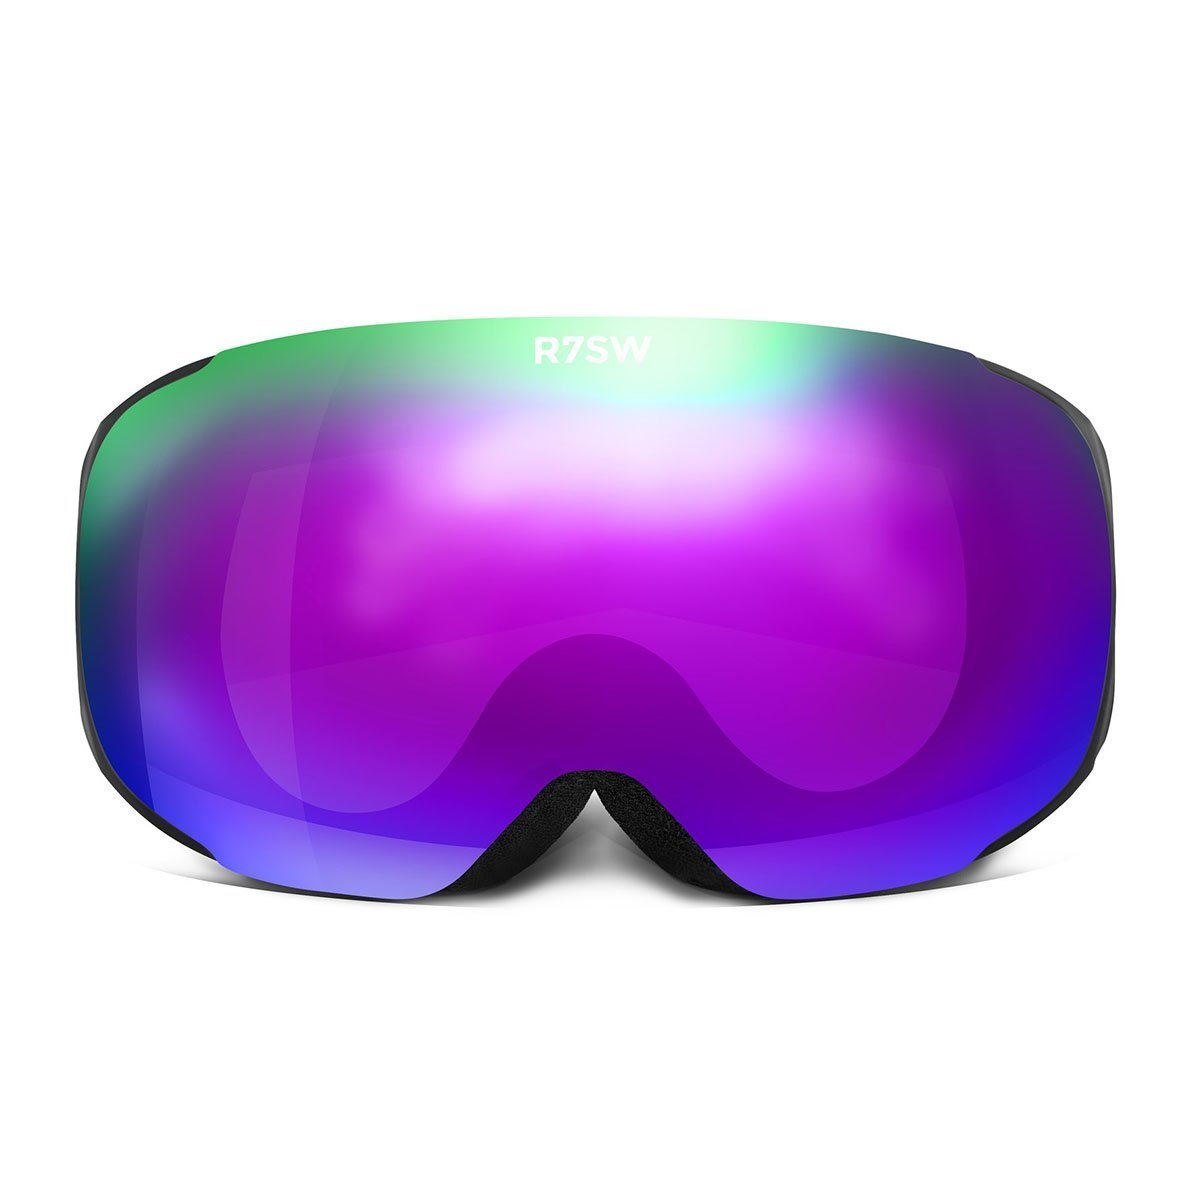 PSGPUR19, Red7SkiWear, Performance Ski Goggles, Purple,